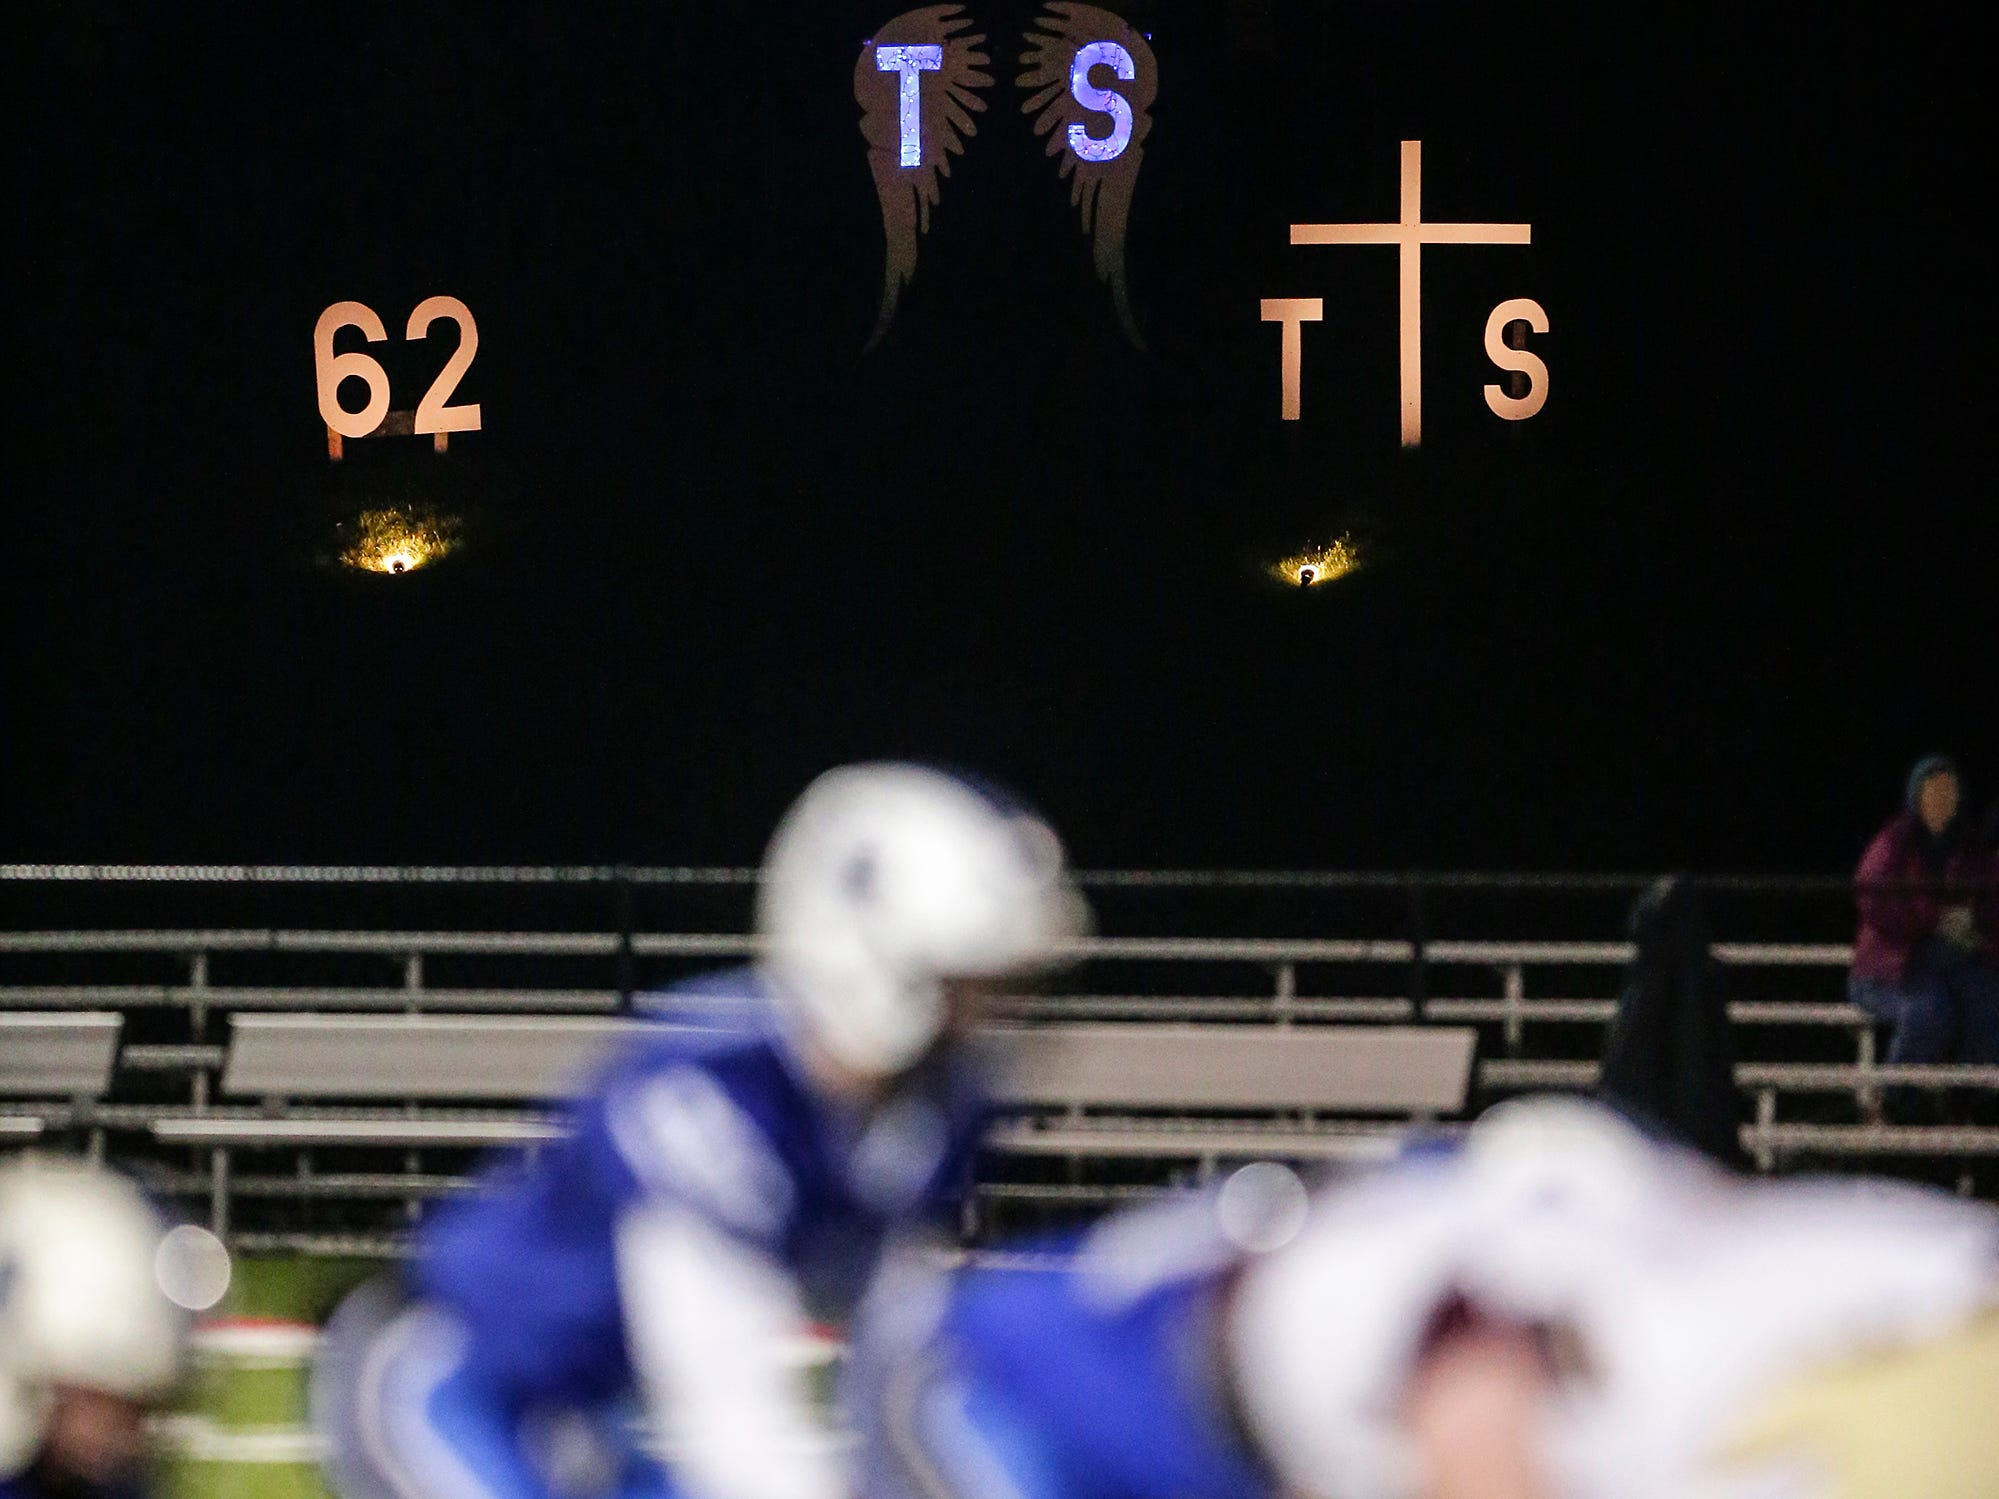 A memorial was set up honoring St. Mary's Springs player Trent Schueffner as the Ledgers played Omro in a WIAA Division 5, level 2 playoff game Friday, Oct. 26, 2018 in Lomira, Wis. Schueffner was killed in a hunting accident exactly one week earlier. Springs won the playoff game 33-20.